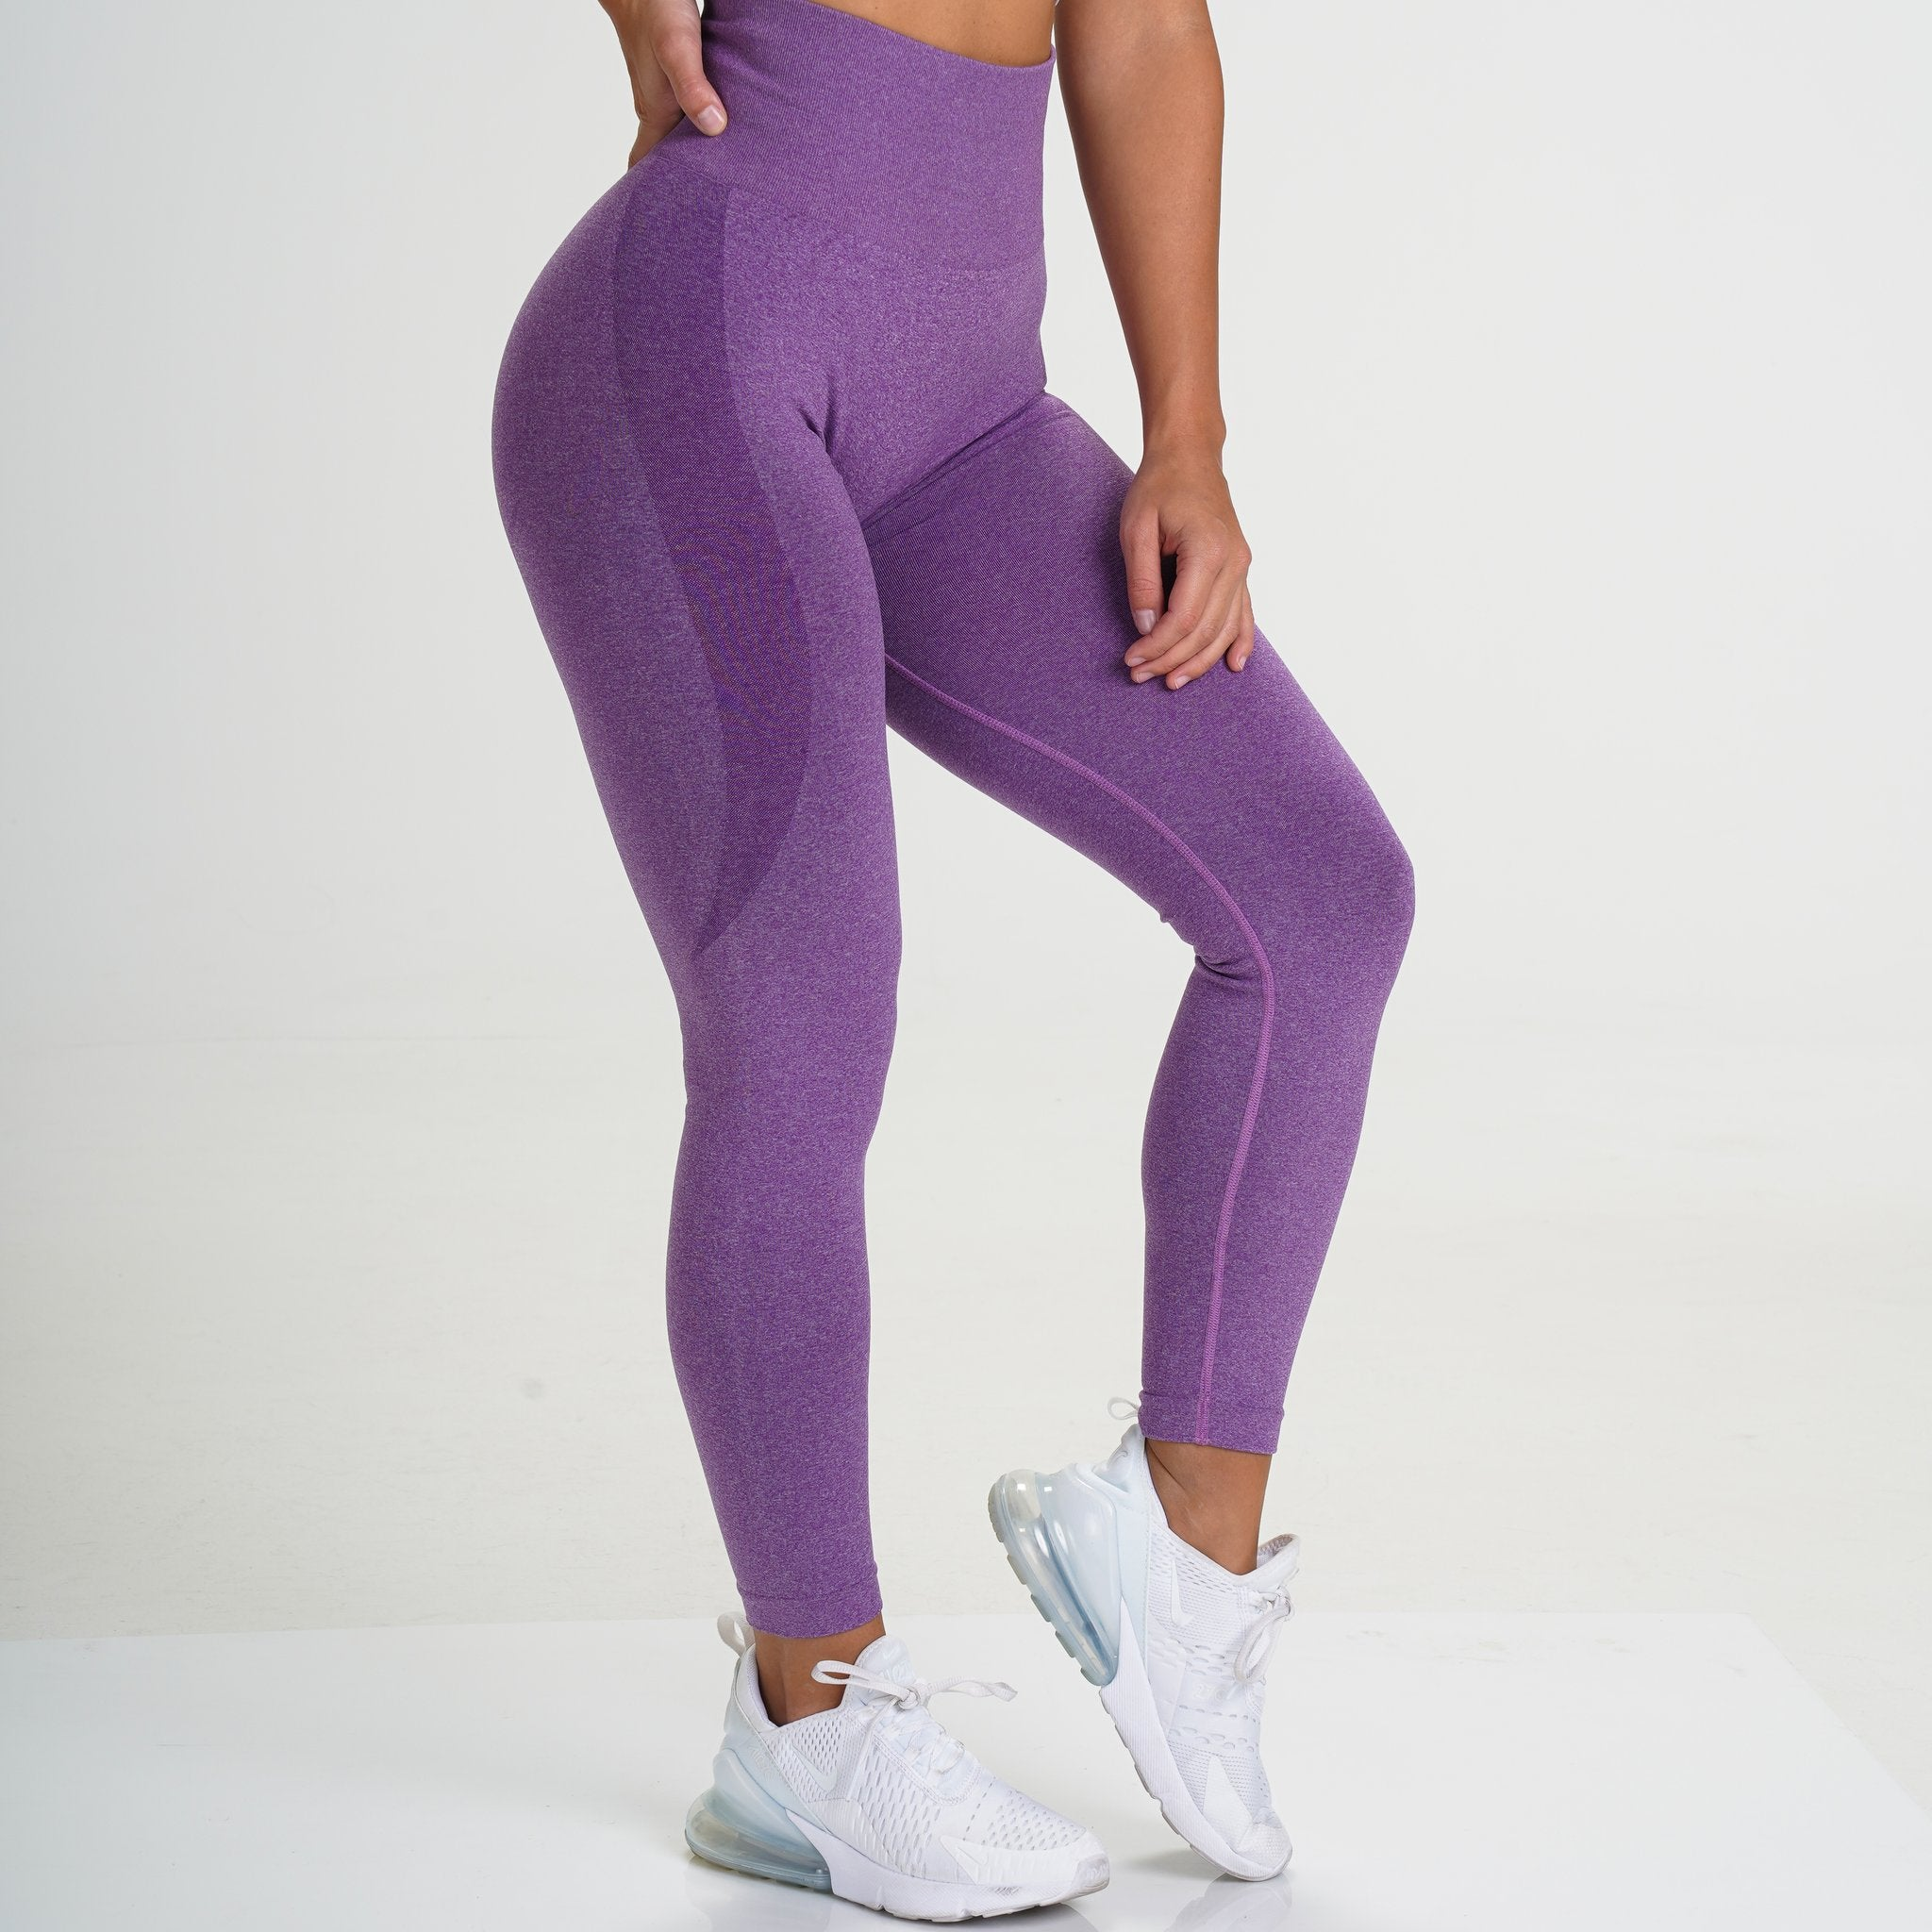 Image of Gymbunny Contour Seamless leggings- Purple